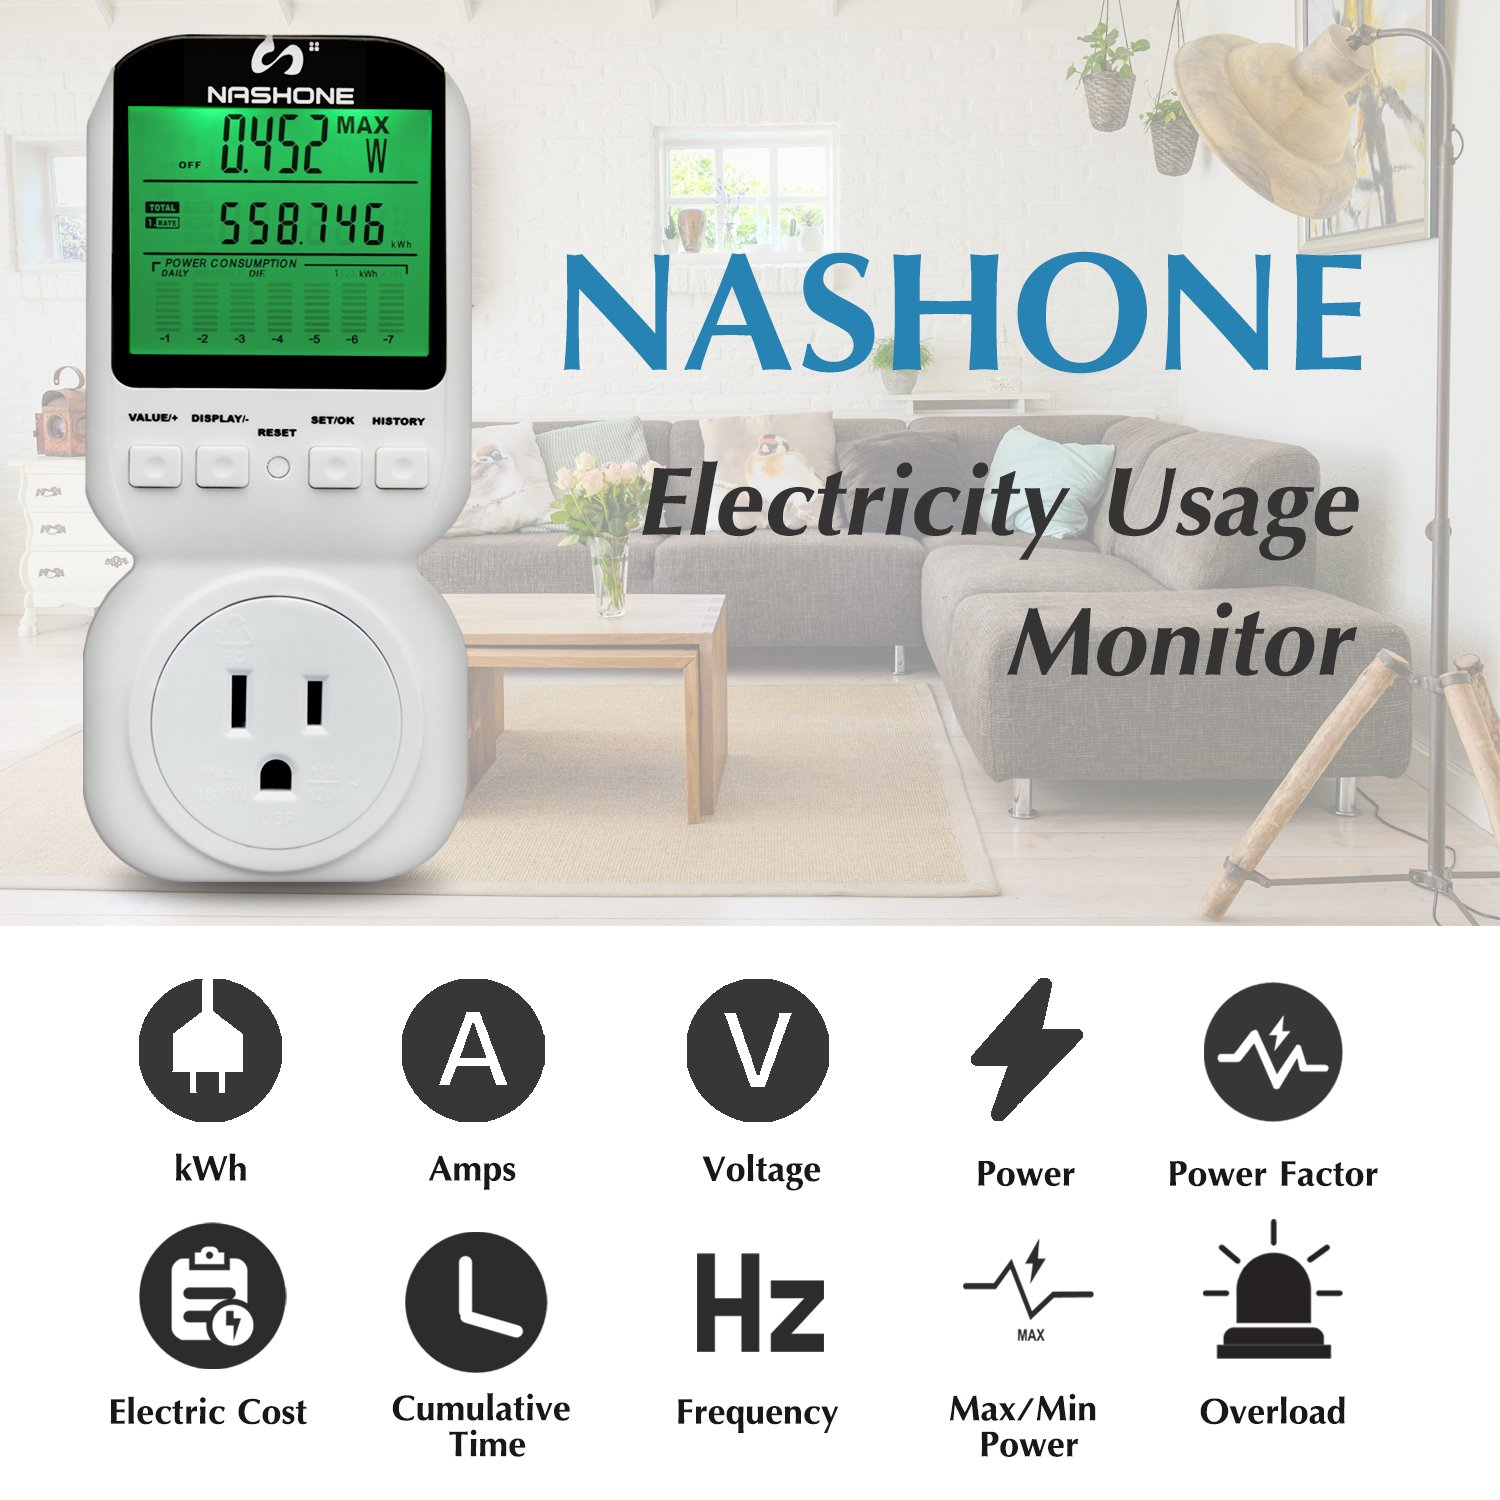 Nashone Digital Electric Power Meter, Smart Home Energy Consumption Monitor,Wall Plugged with Timer LCD Display Overload Alarm by Nashone (Image #3)